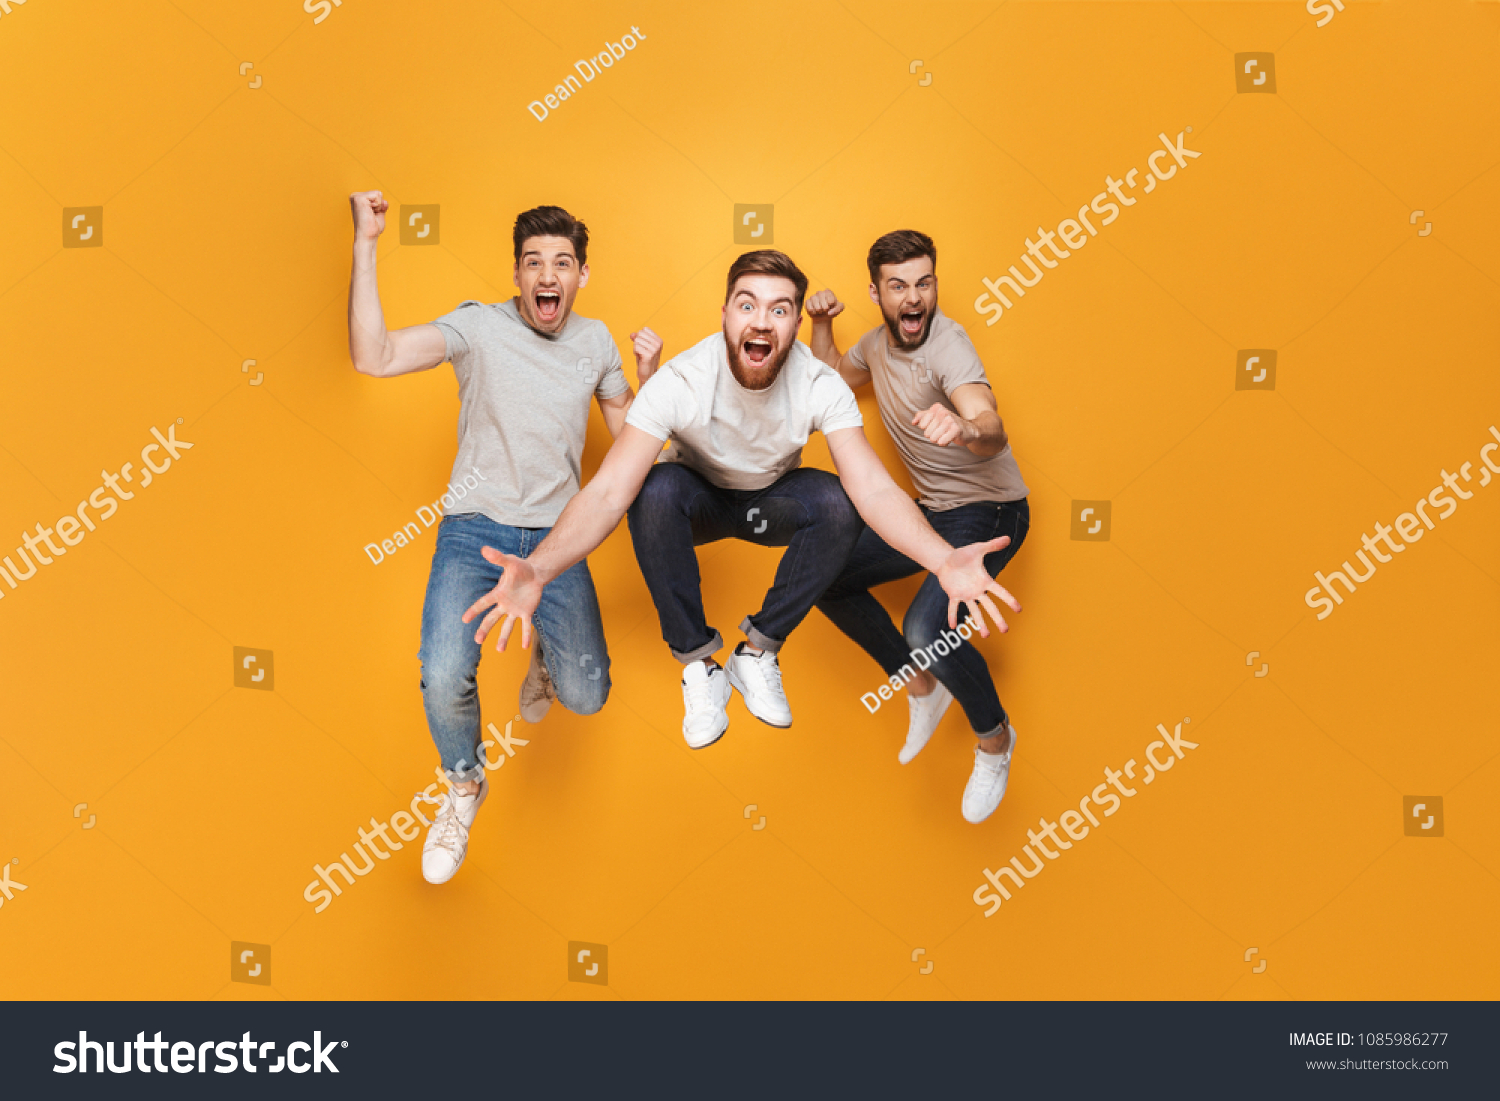 Three young excited men jumping together isolated over yellow background #1085986277 - 123PhotoFree.com